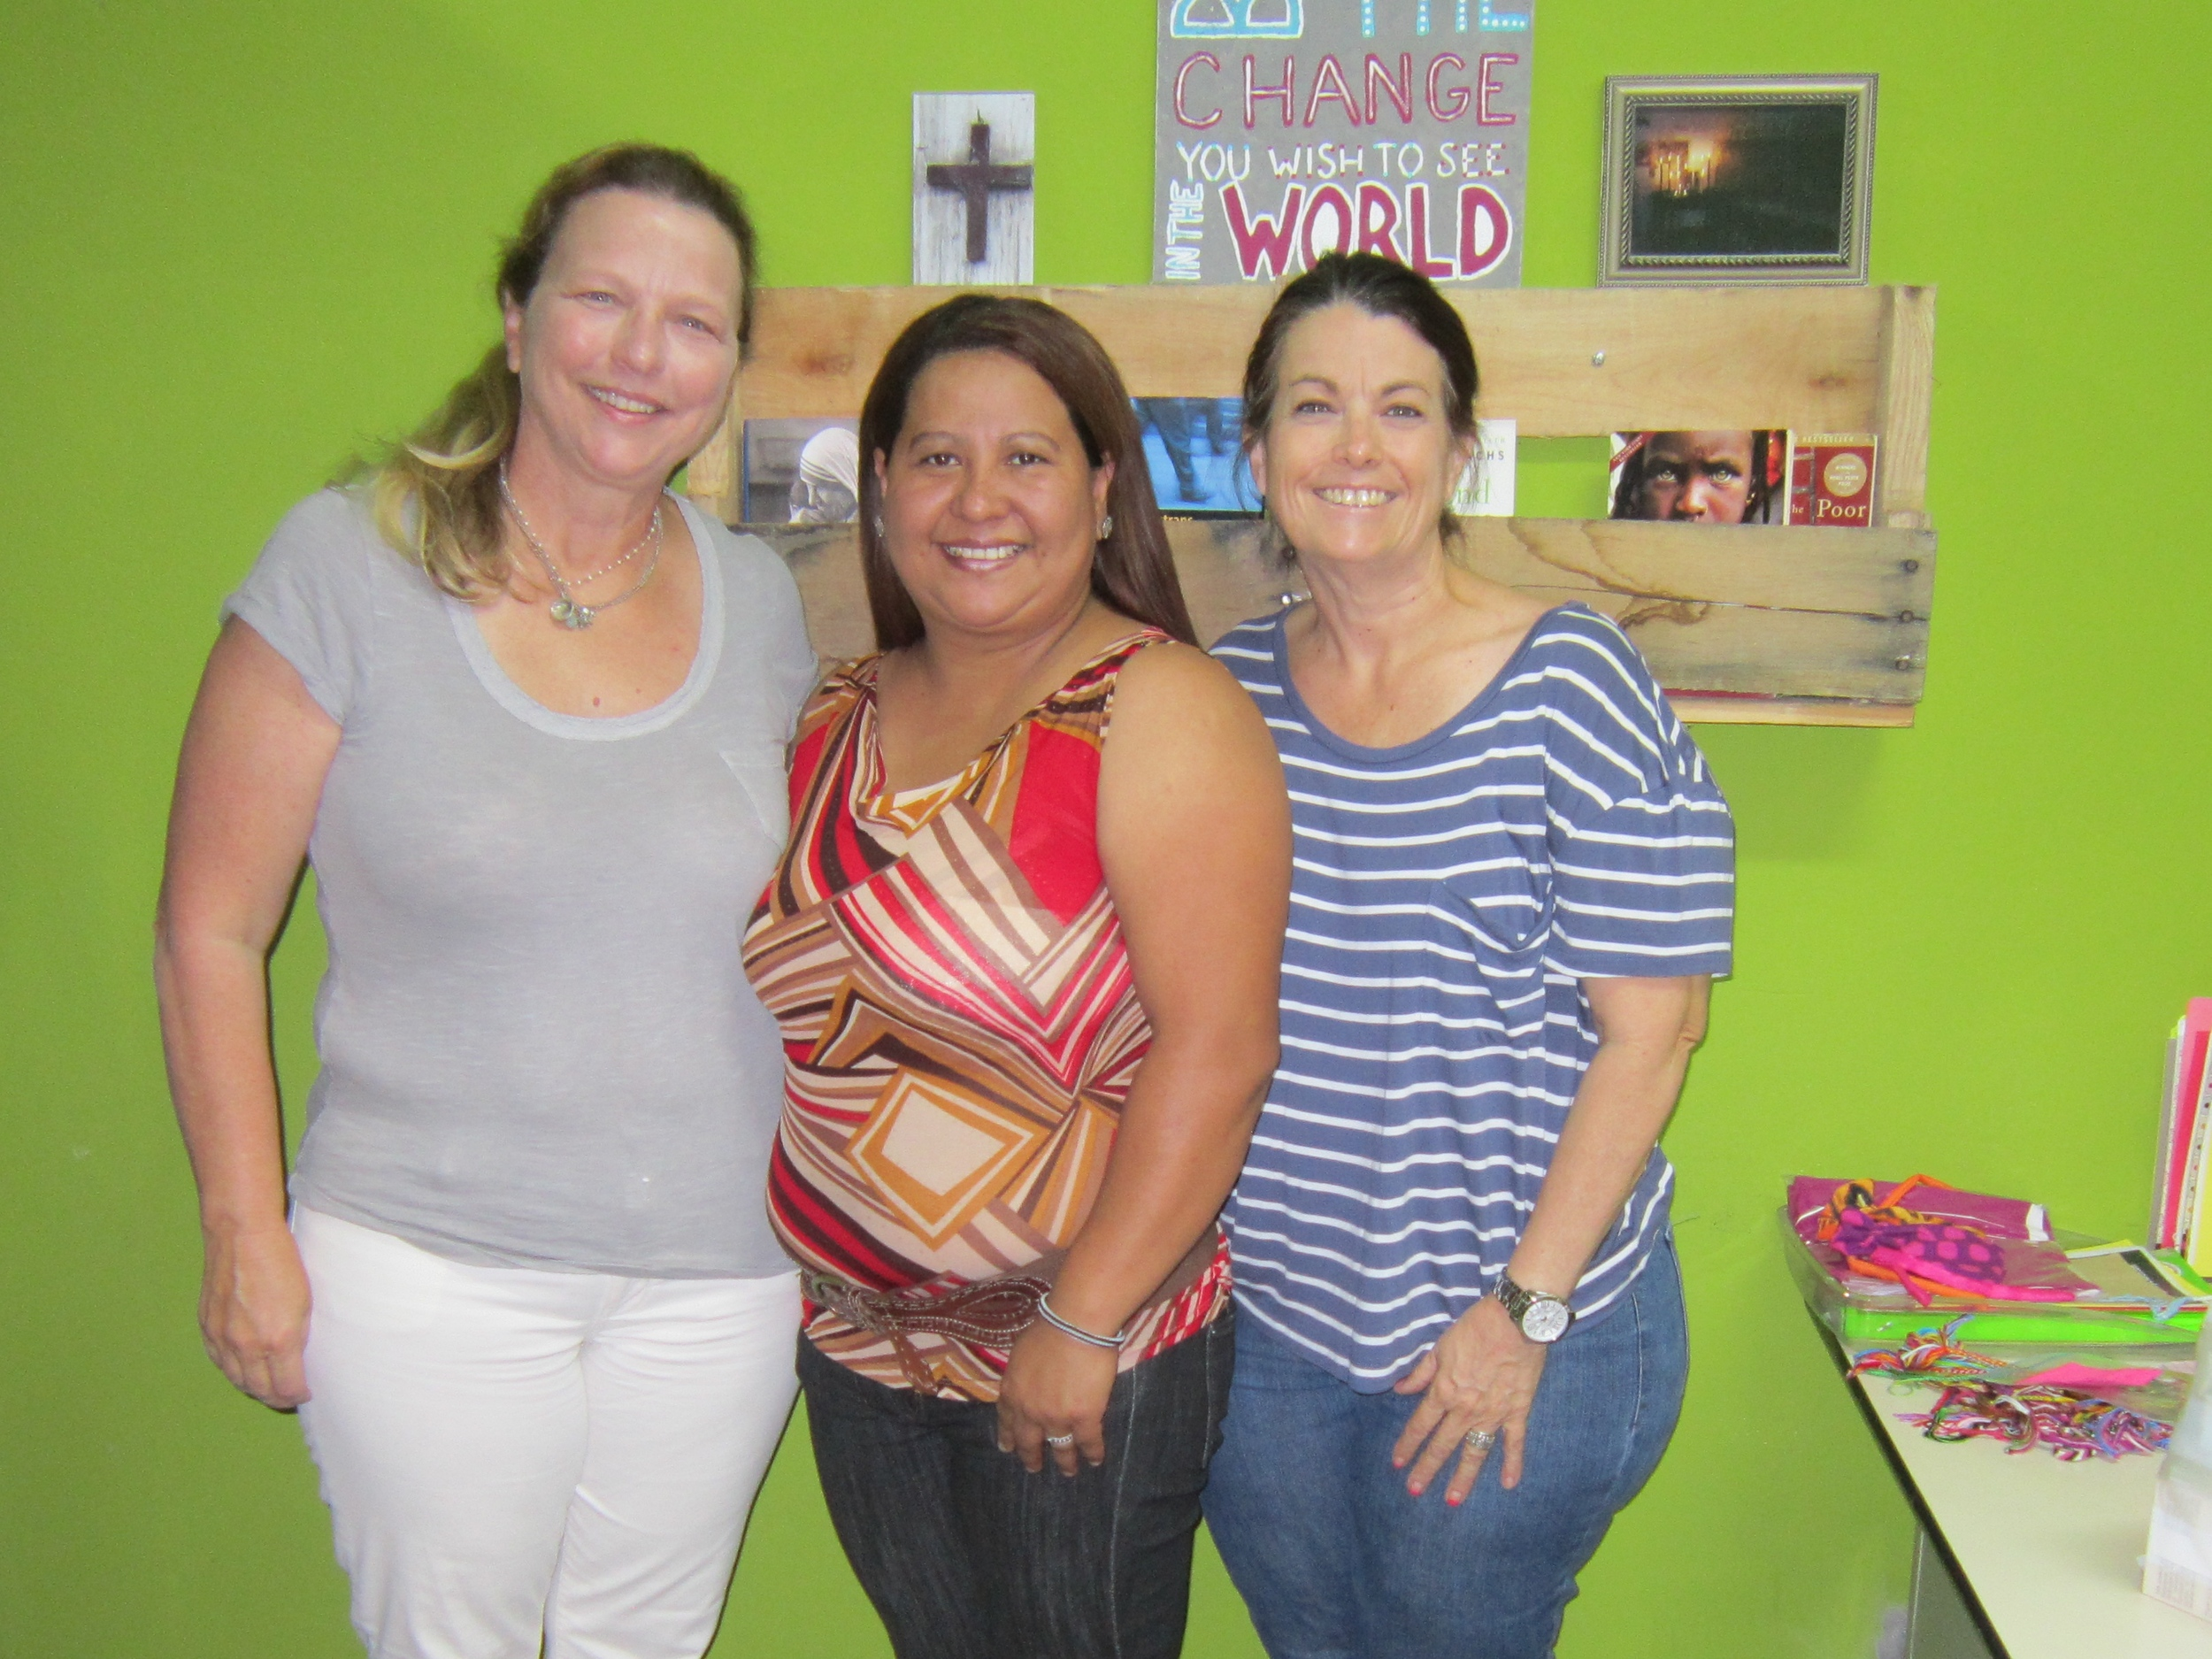 the day she payed her final payment on her first loan with founders janet Hines and Lori Connell 2014